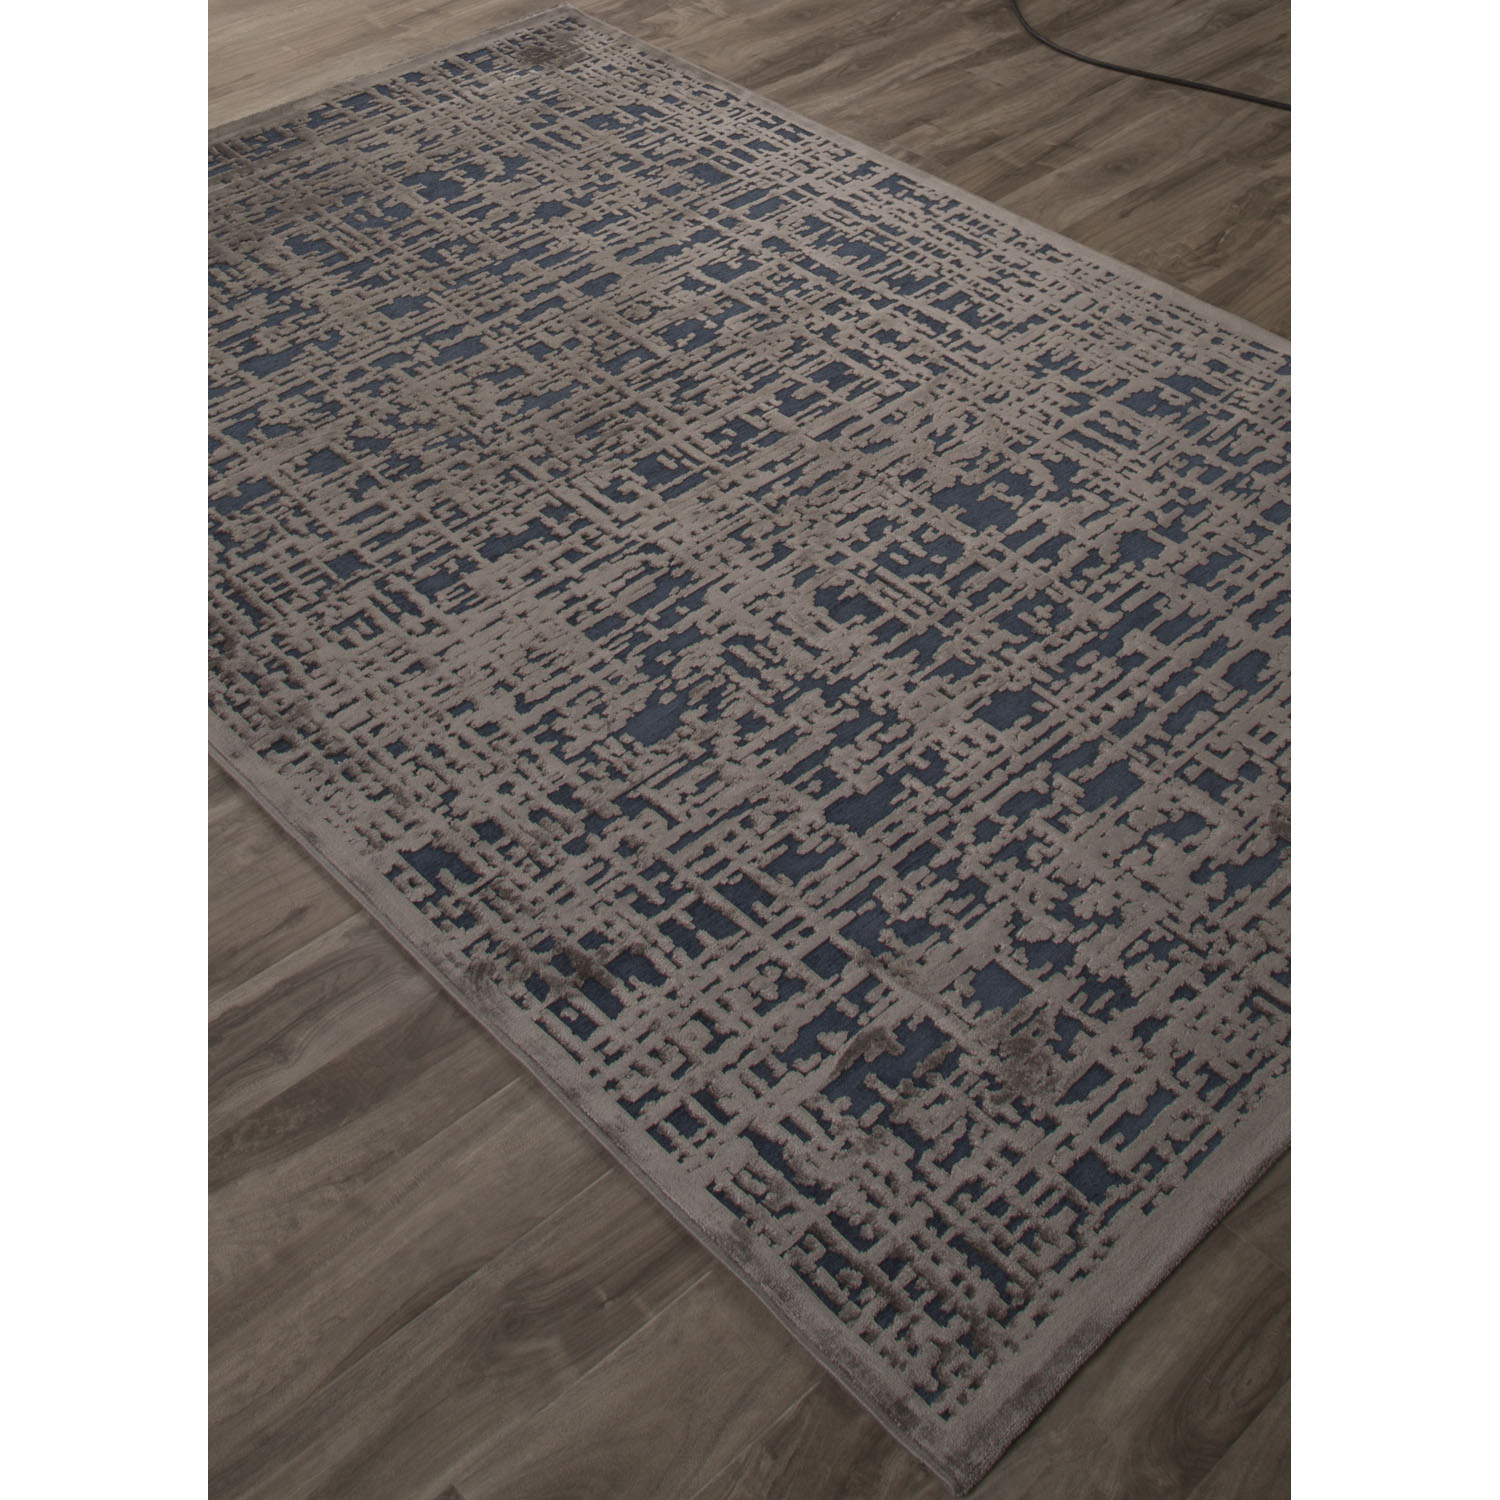 Jaipur Fables FB108 Rug